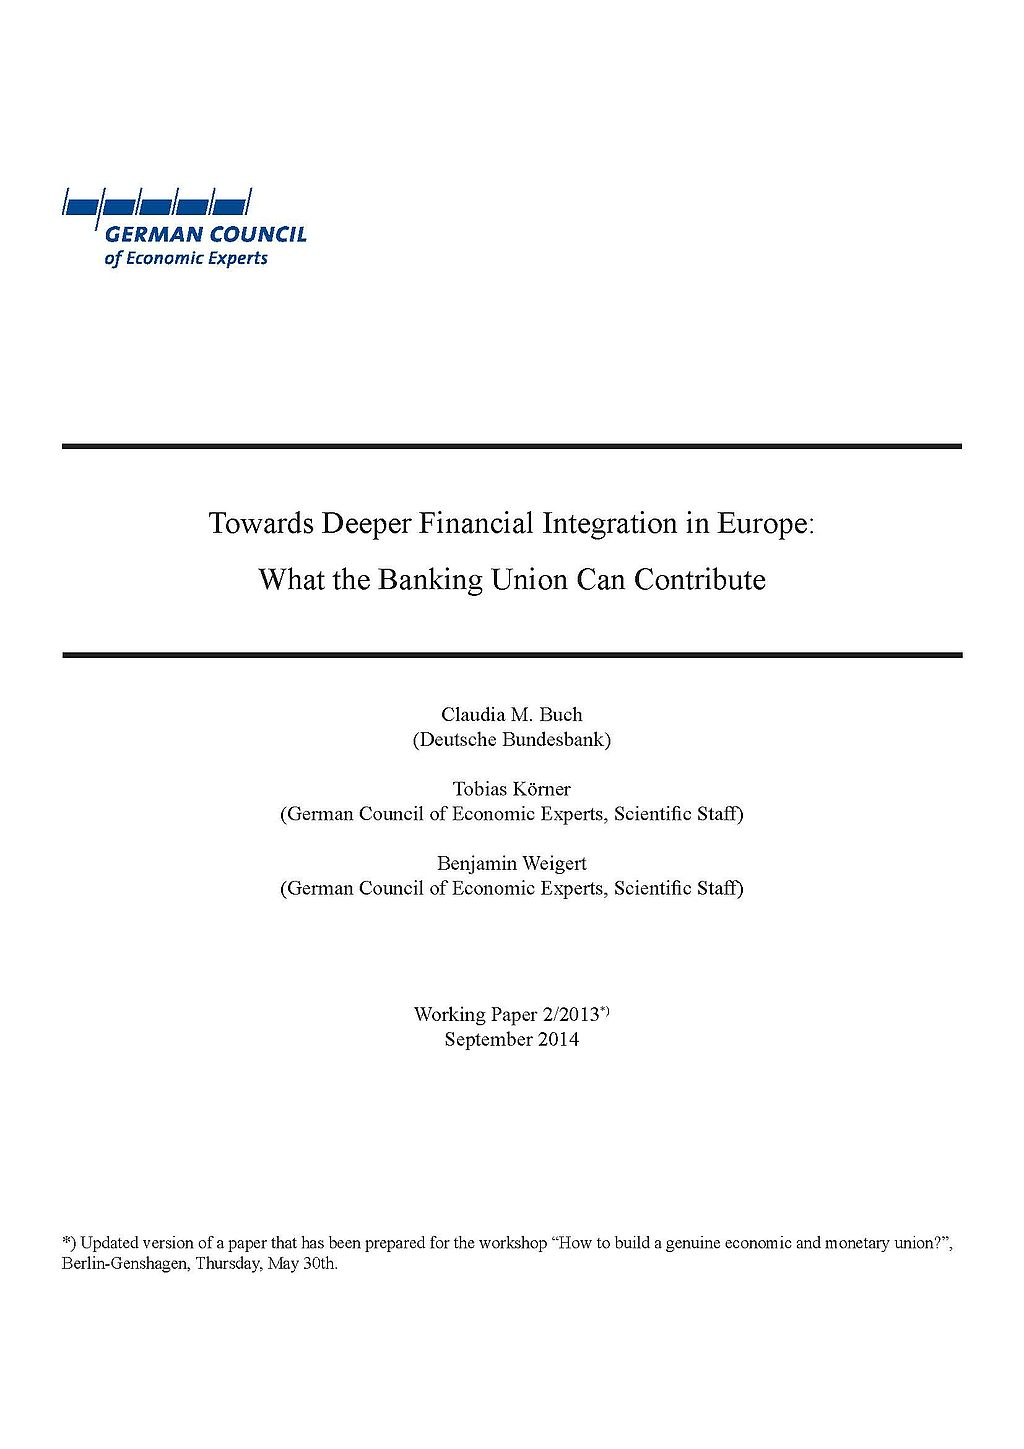 cover_German-Council-of-Economic-Experts-Working-Paper_2013-02.jpg